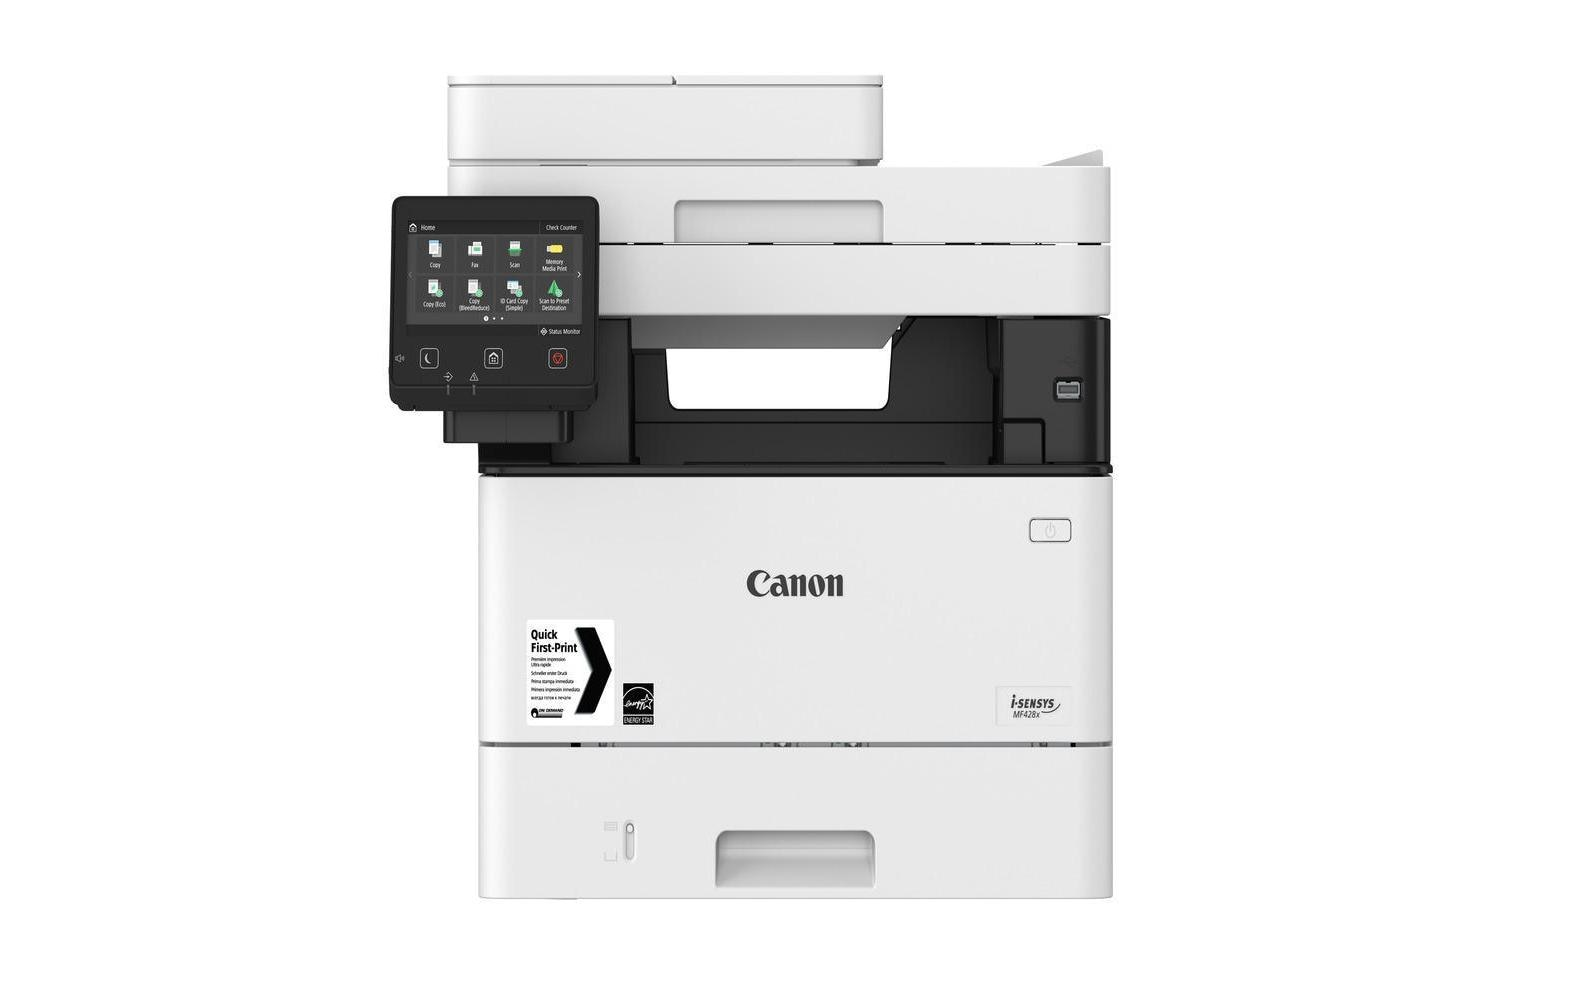 Multifunktionsdrucker, Canon, »i-SENSYS MF428x«